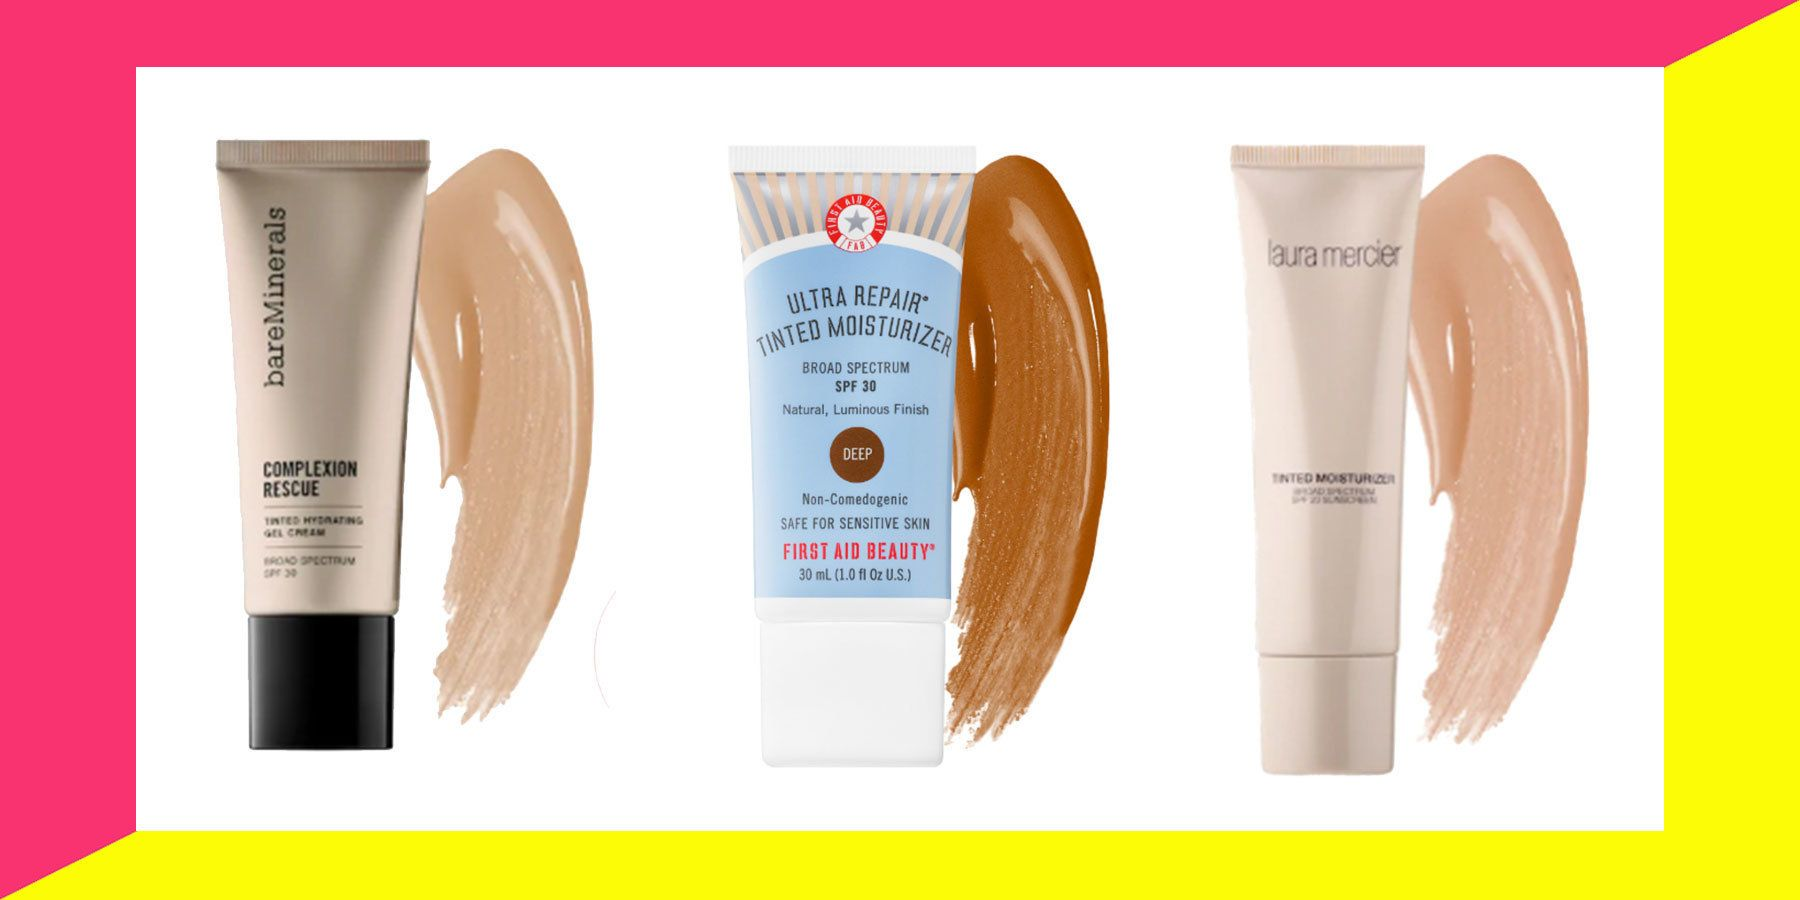 "An SPF tinted moisturizer might be the solution to your <a href=""https://www.huffpost.com/entry/summer-skin-care_n_59380fd4e4b0ce1e740998cd"" target=""_blank"" rel=""noopener noreferrer"">summer skin</a>."